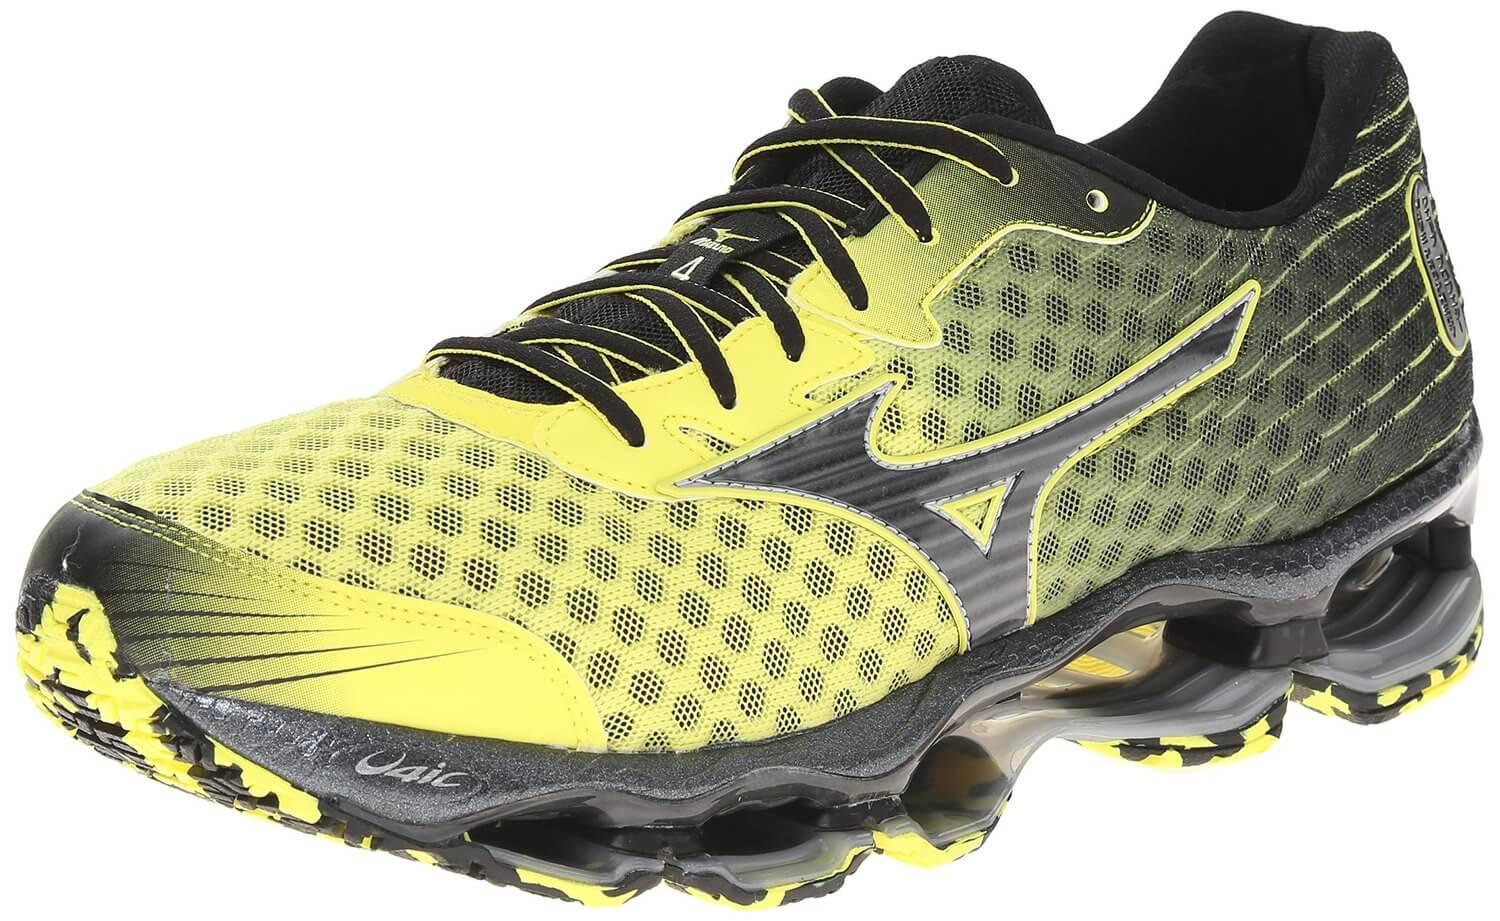 1d4e361bf272 Mizuno Wave Prophecy 4 - To Buy or Not in June 2019?